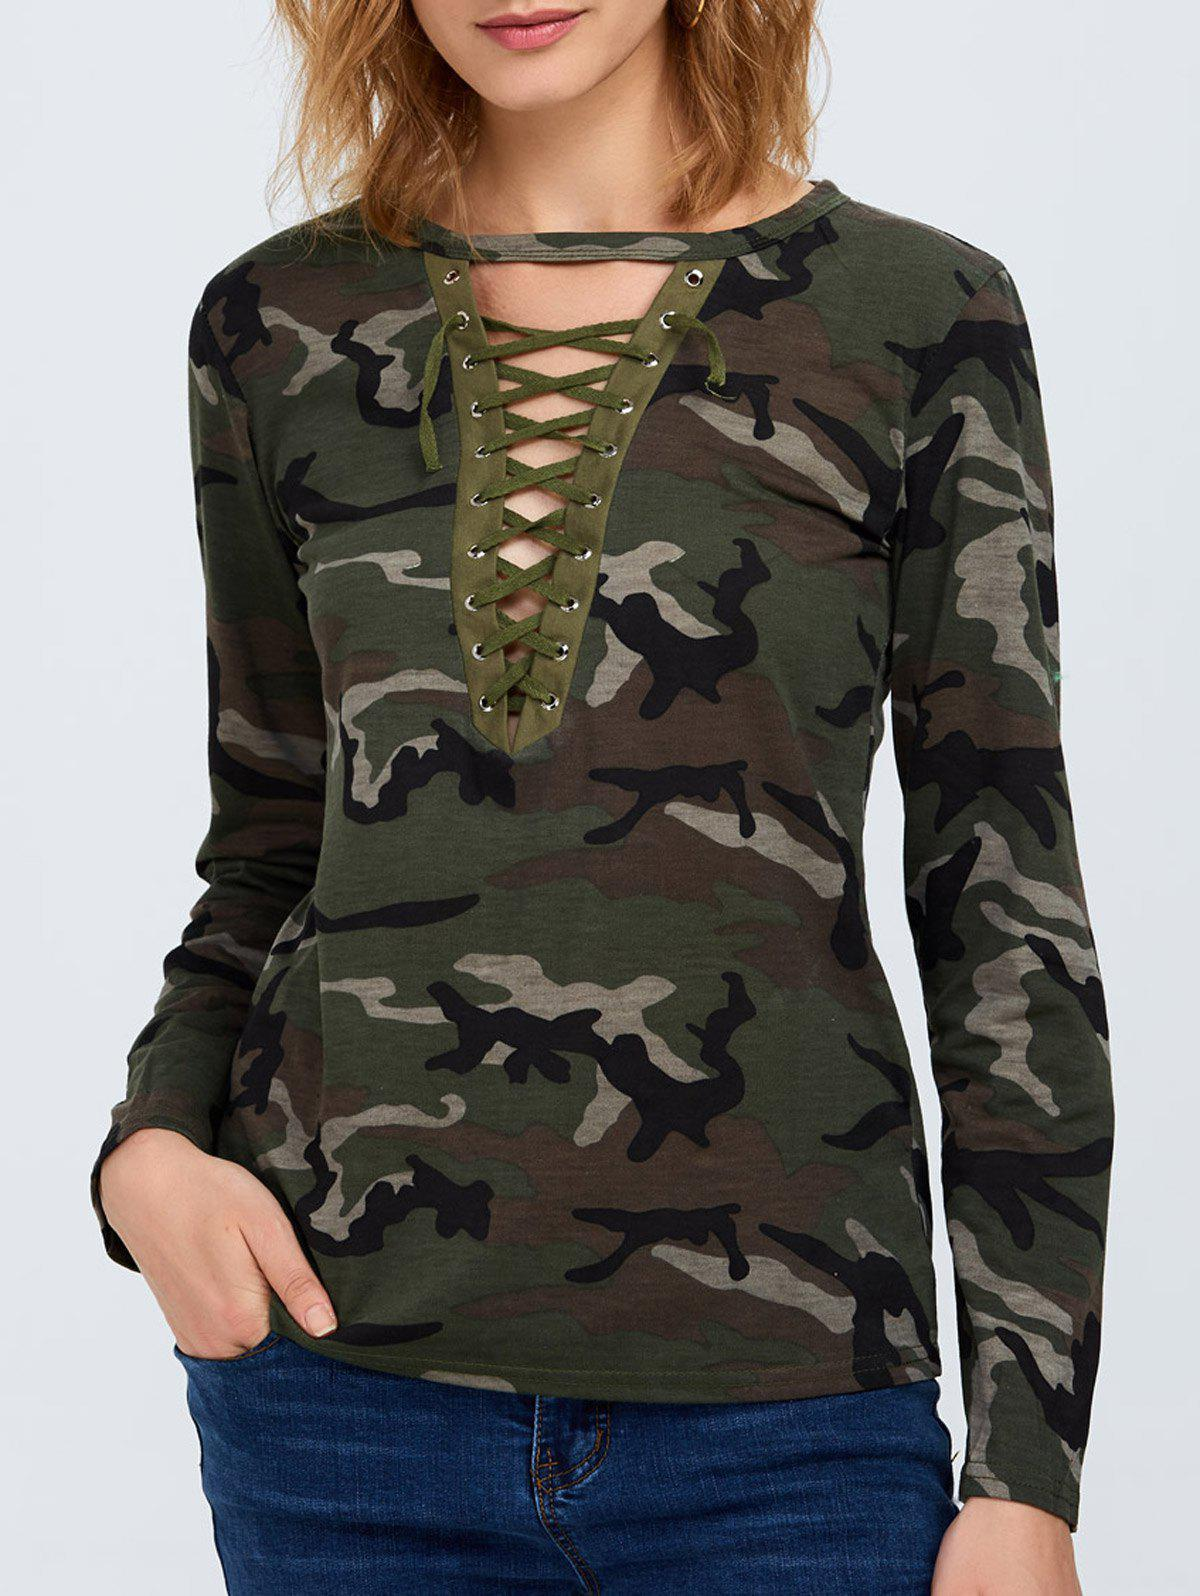 Discount Camo Long Sleeve Lace Up T-Shirt